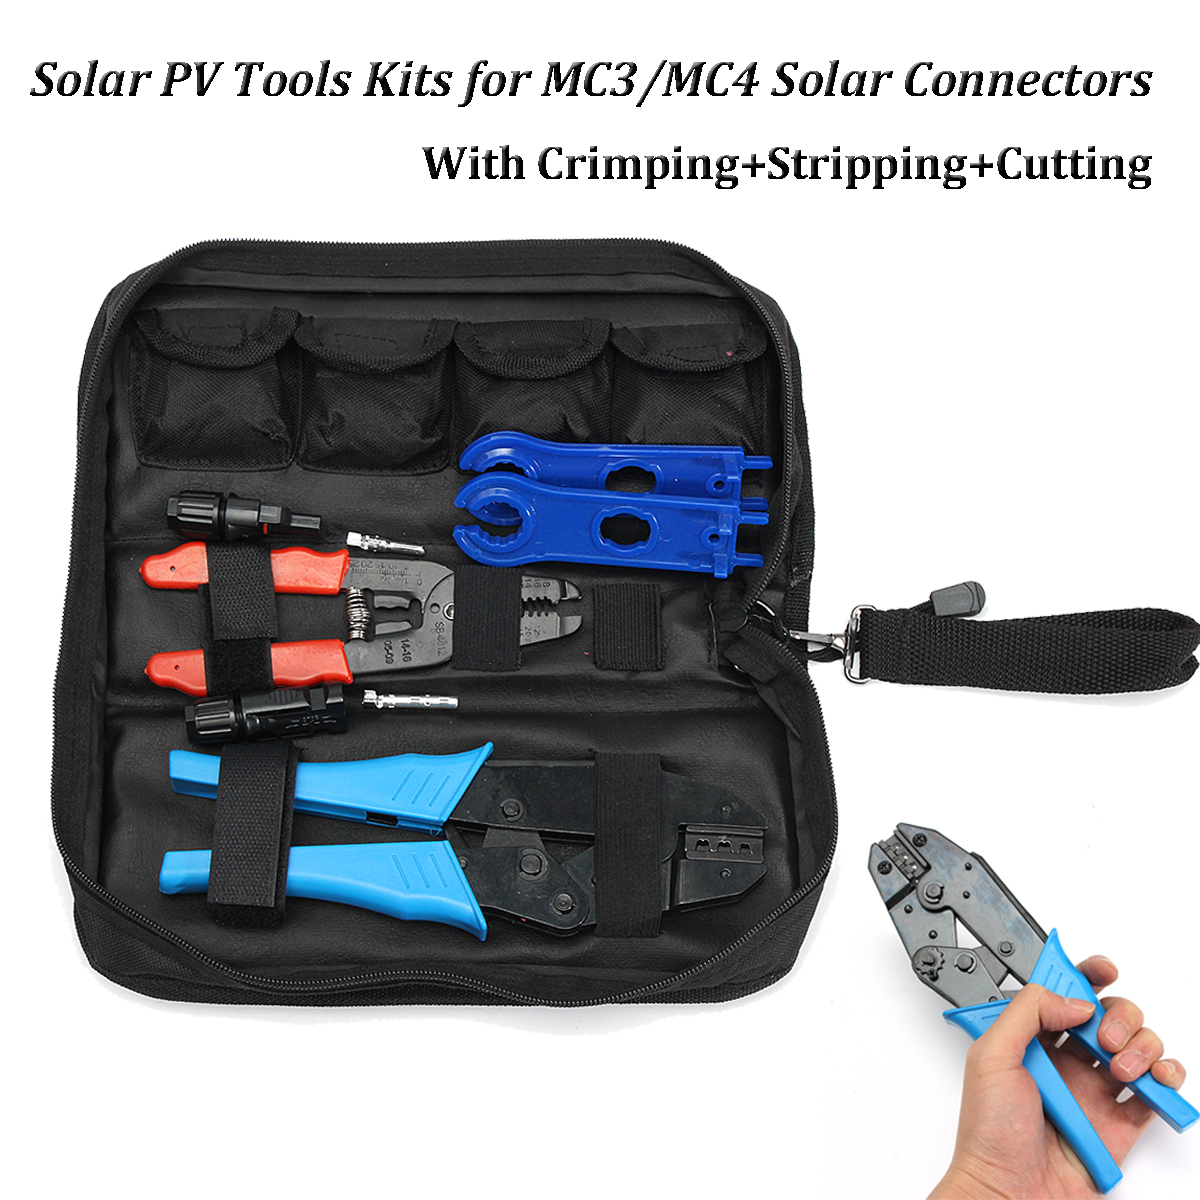 цена на 6pc/set Solar PV Kit Tools For MC3/MC4 Solar Panel Multitool Crimping Tools 26-10AWG 2.5-6mm2 Wire Crimper Wire Connector Cut